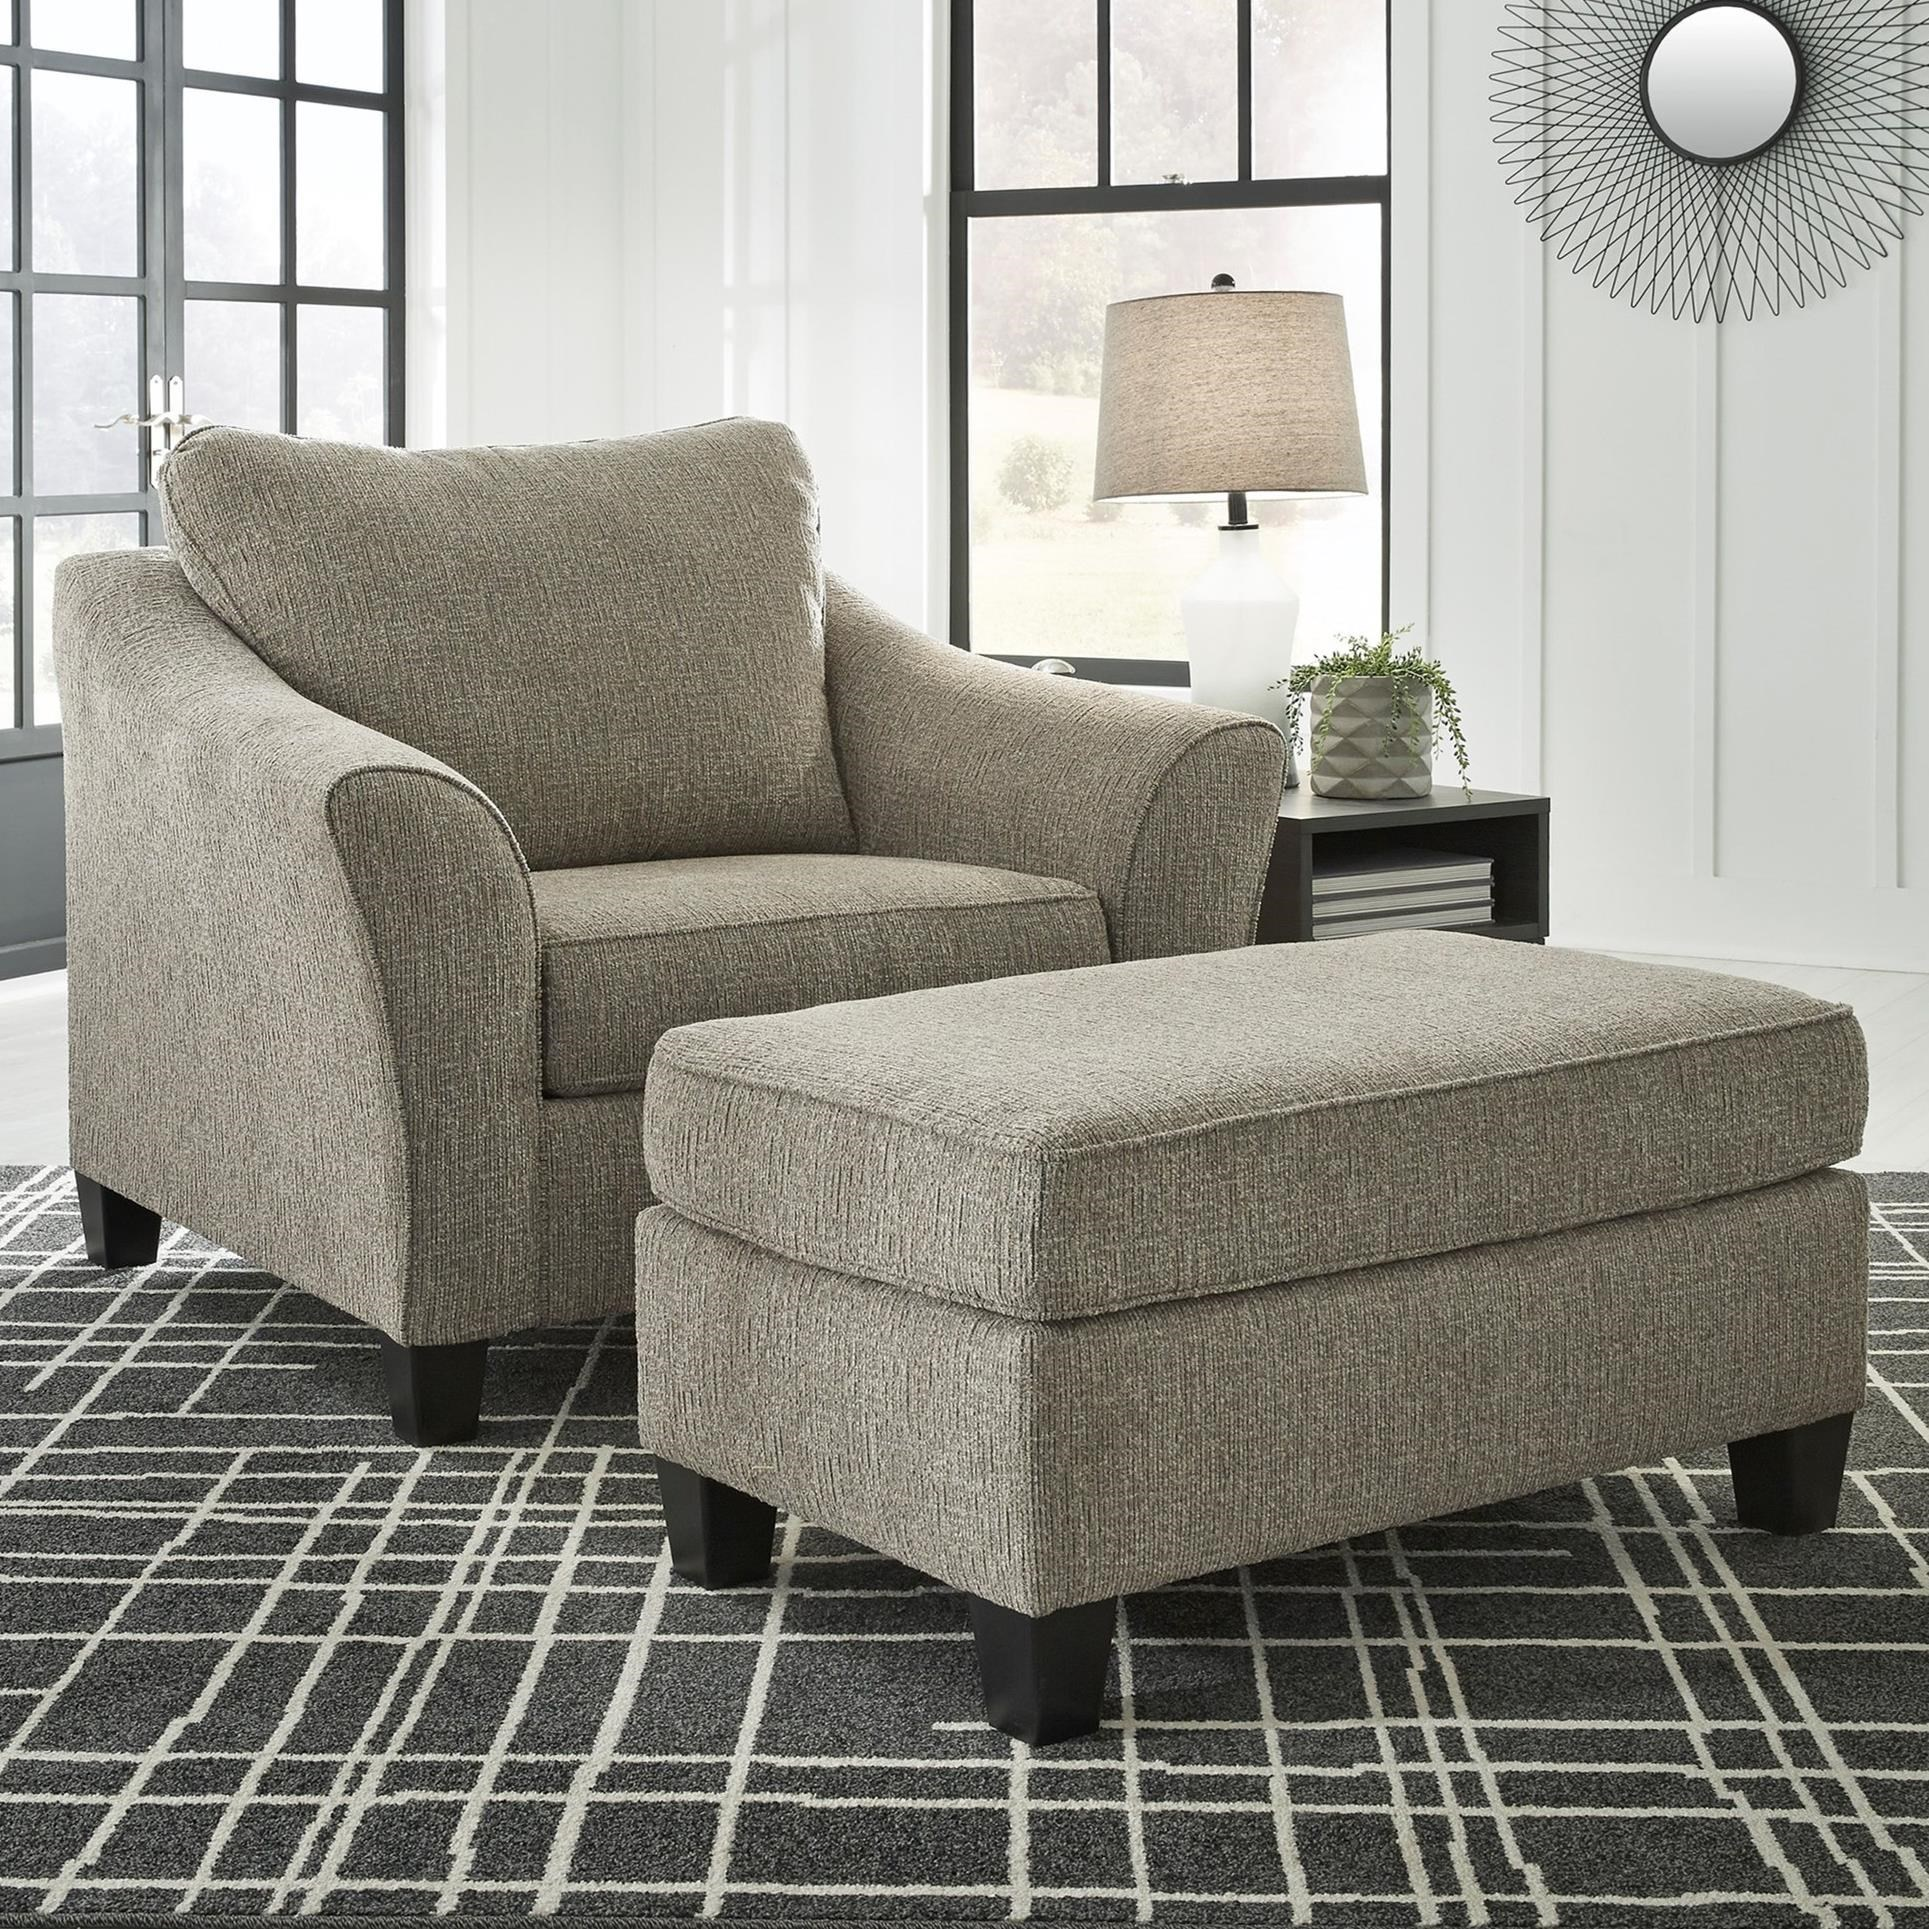 Contemporary Chair and a Half & Ottoman